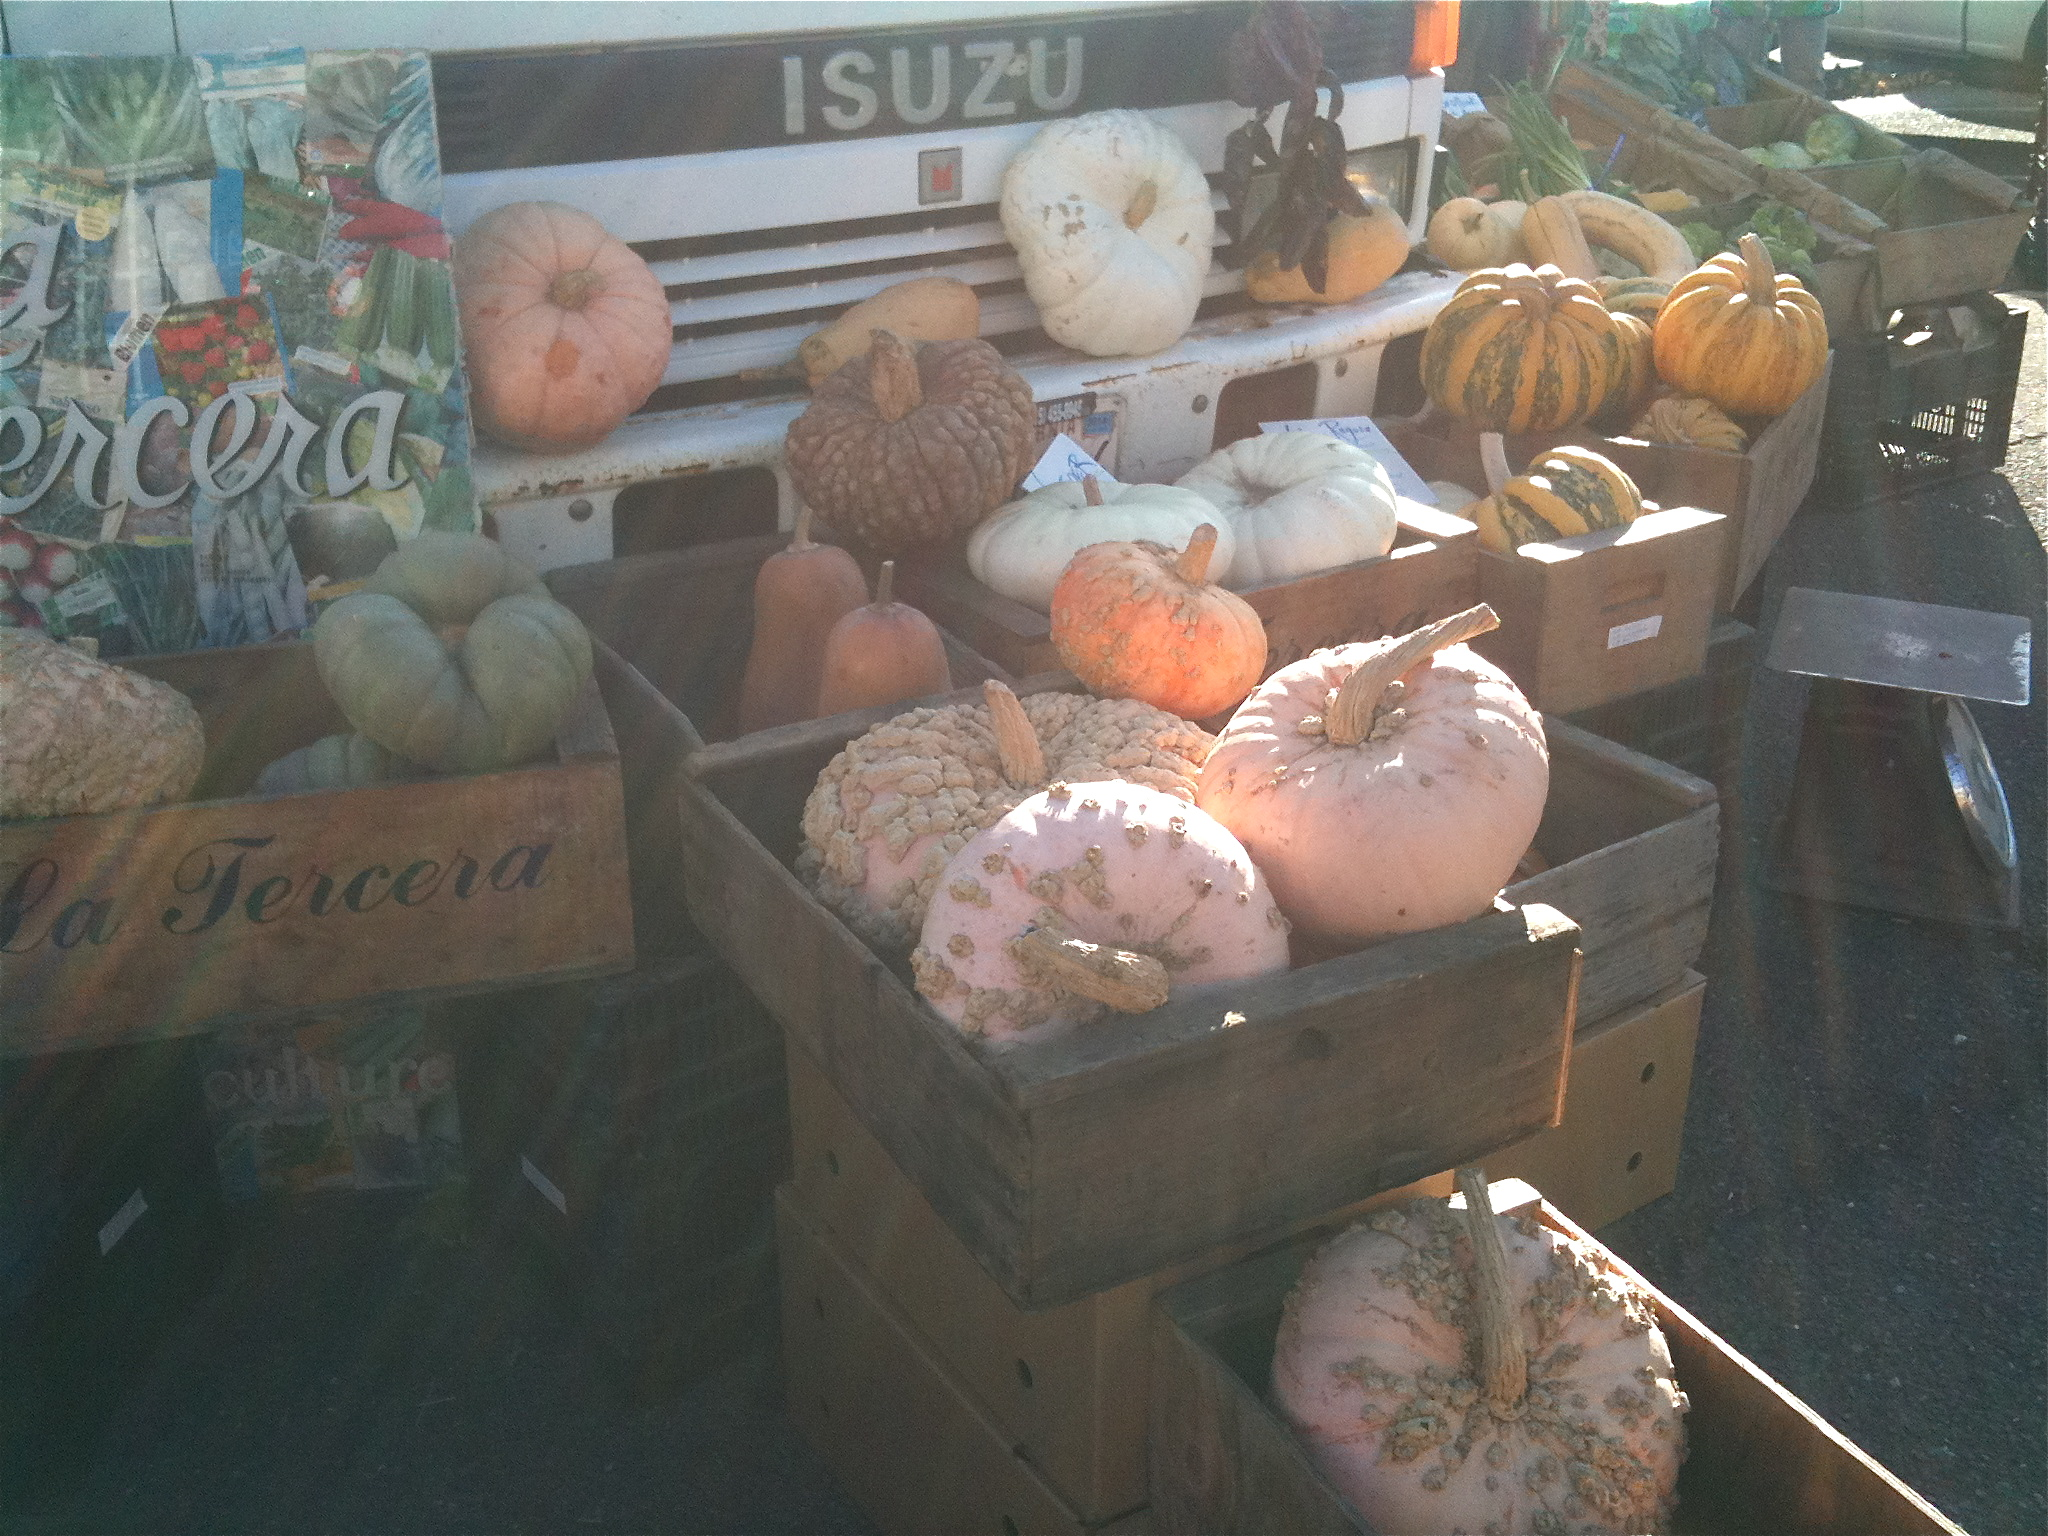 Our new market friends have the most amazing offering of Fall squash varieties!